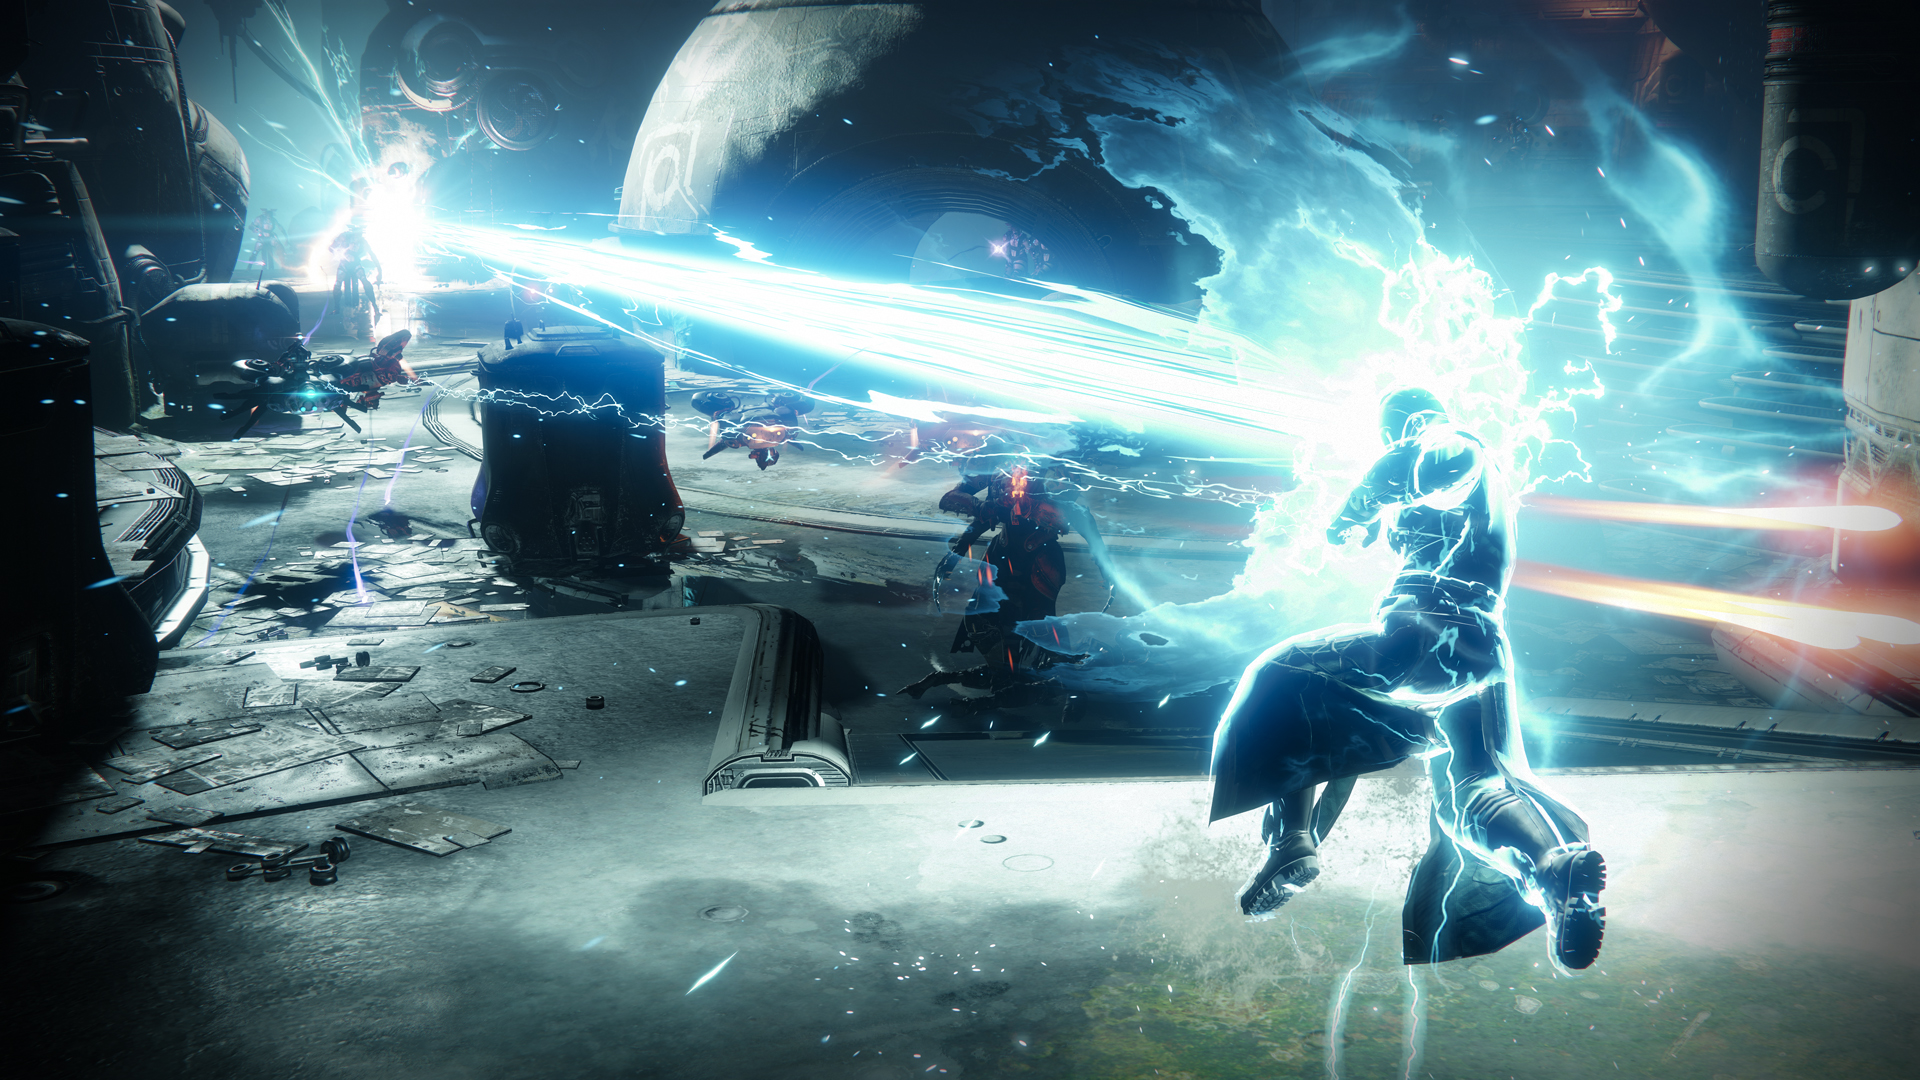 Destiny 2's Season of the Forge patch adjusts Warlock supers.